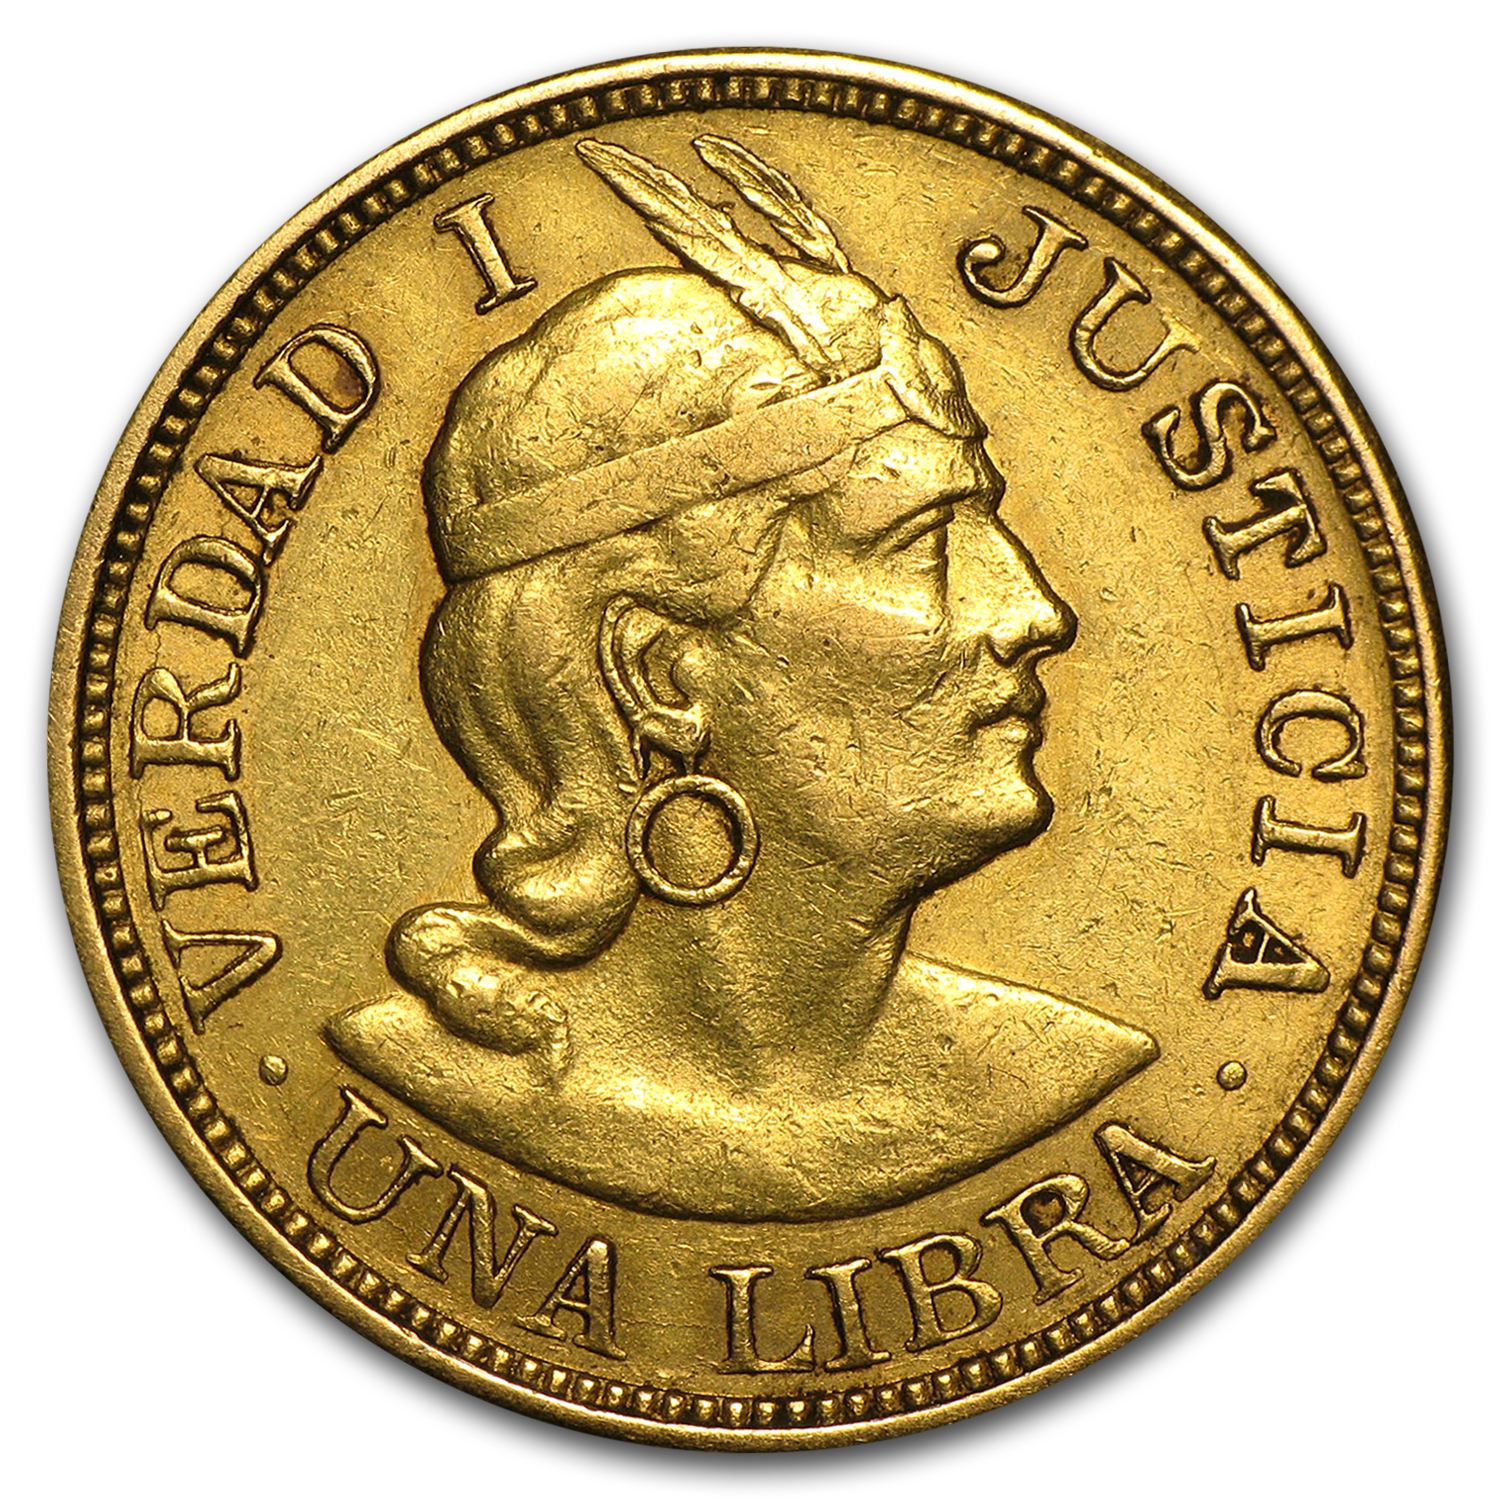 Peru Gold 1 Libra Average Circ (Random Dates)